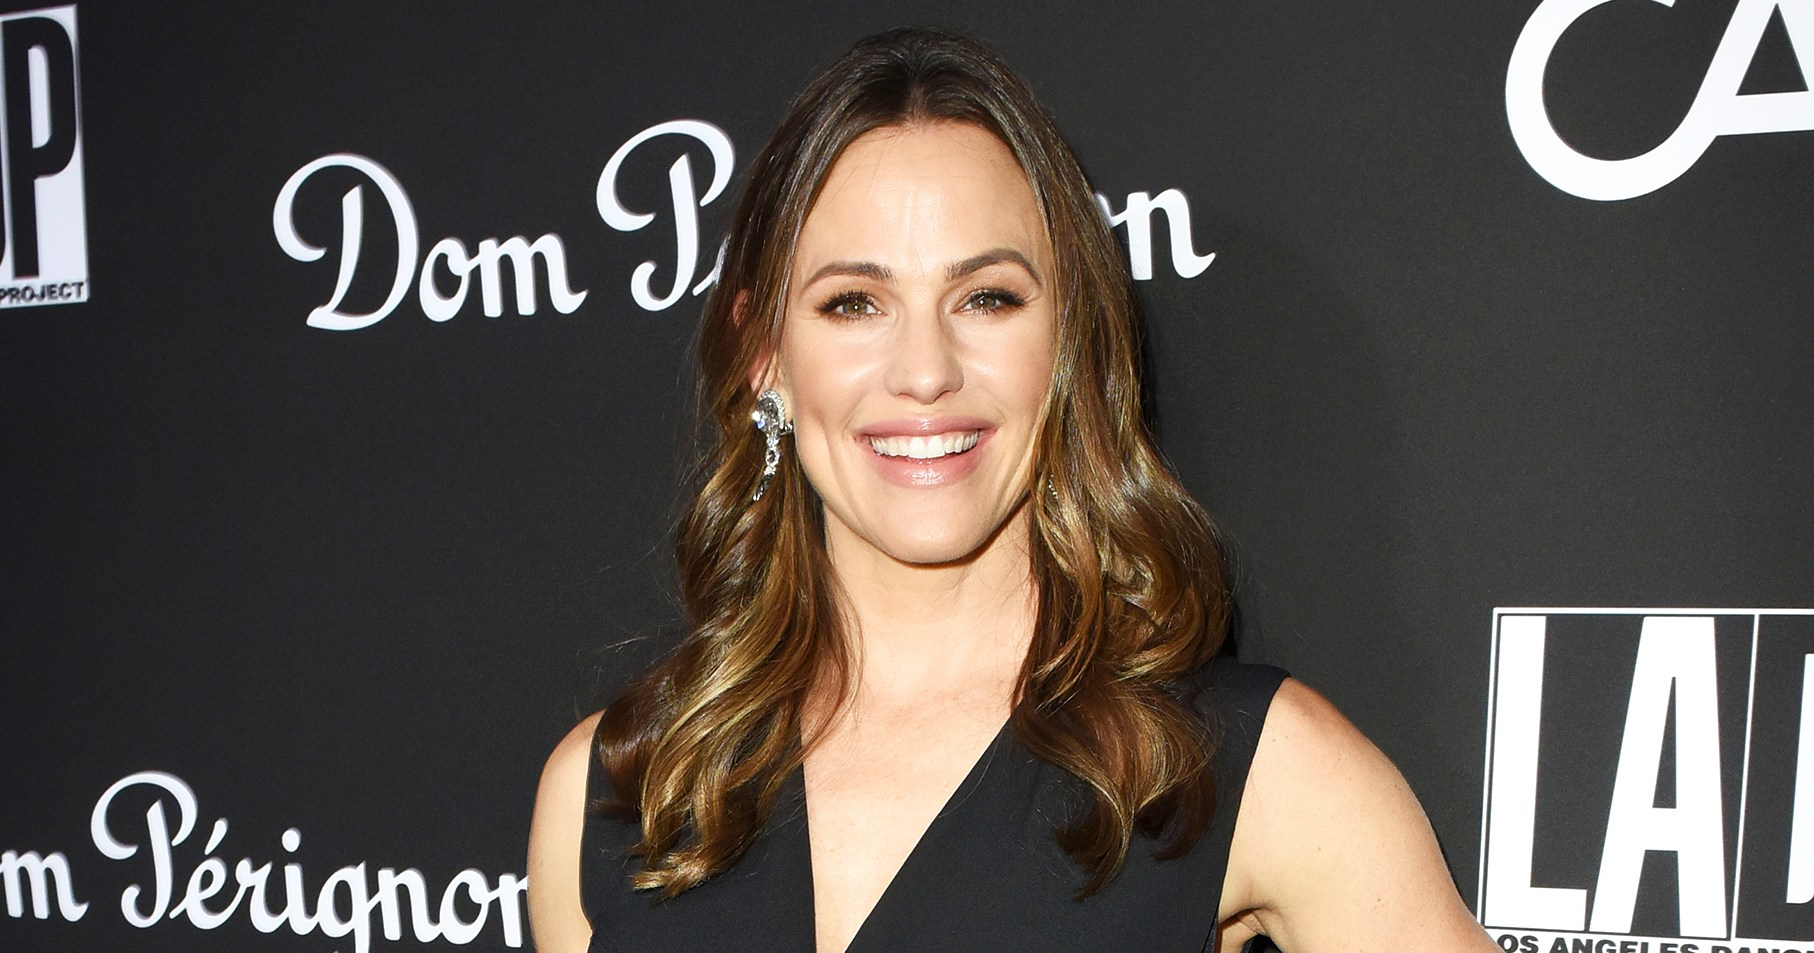 Jennifer Garner Bakes While Trying Not to Wake Kids